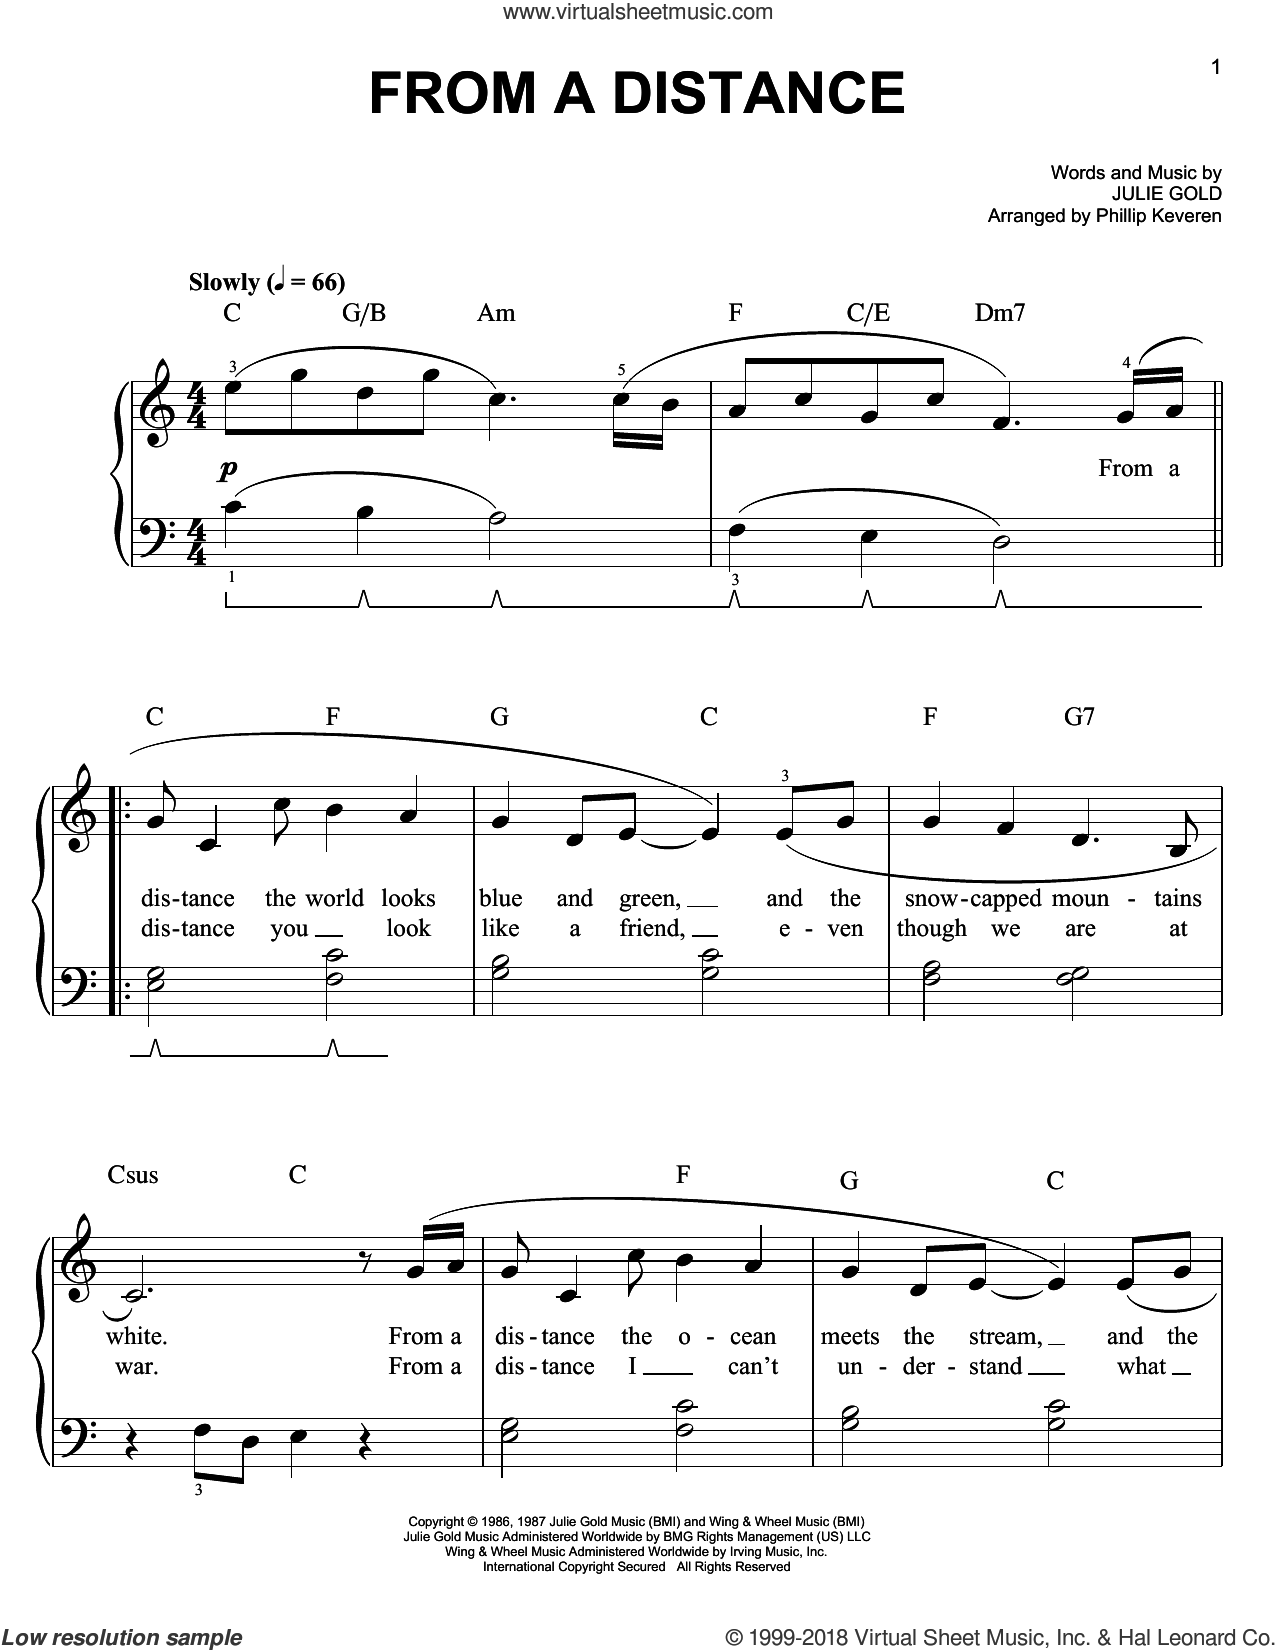 From A Distance sheet music for piano solo by Phillip Keveren, Bette Midler and Julie Gold. Score Image Preview.